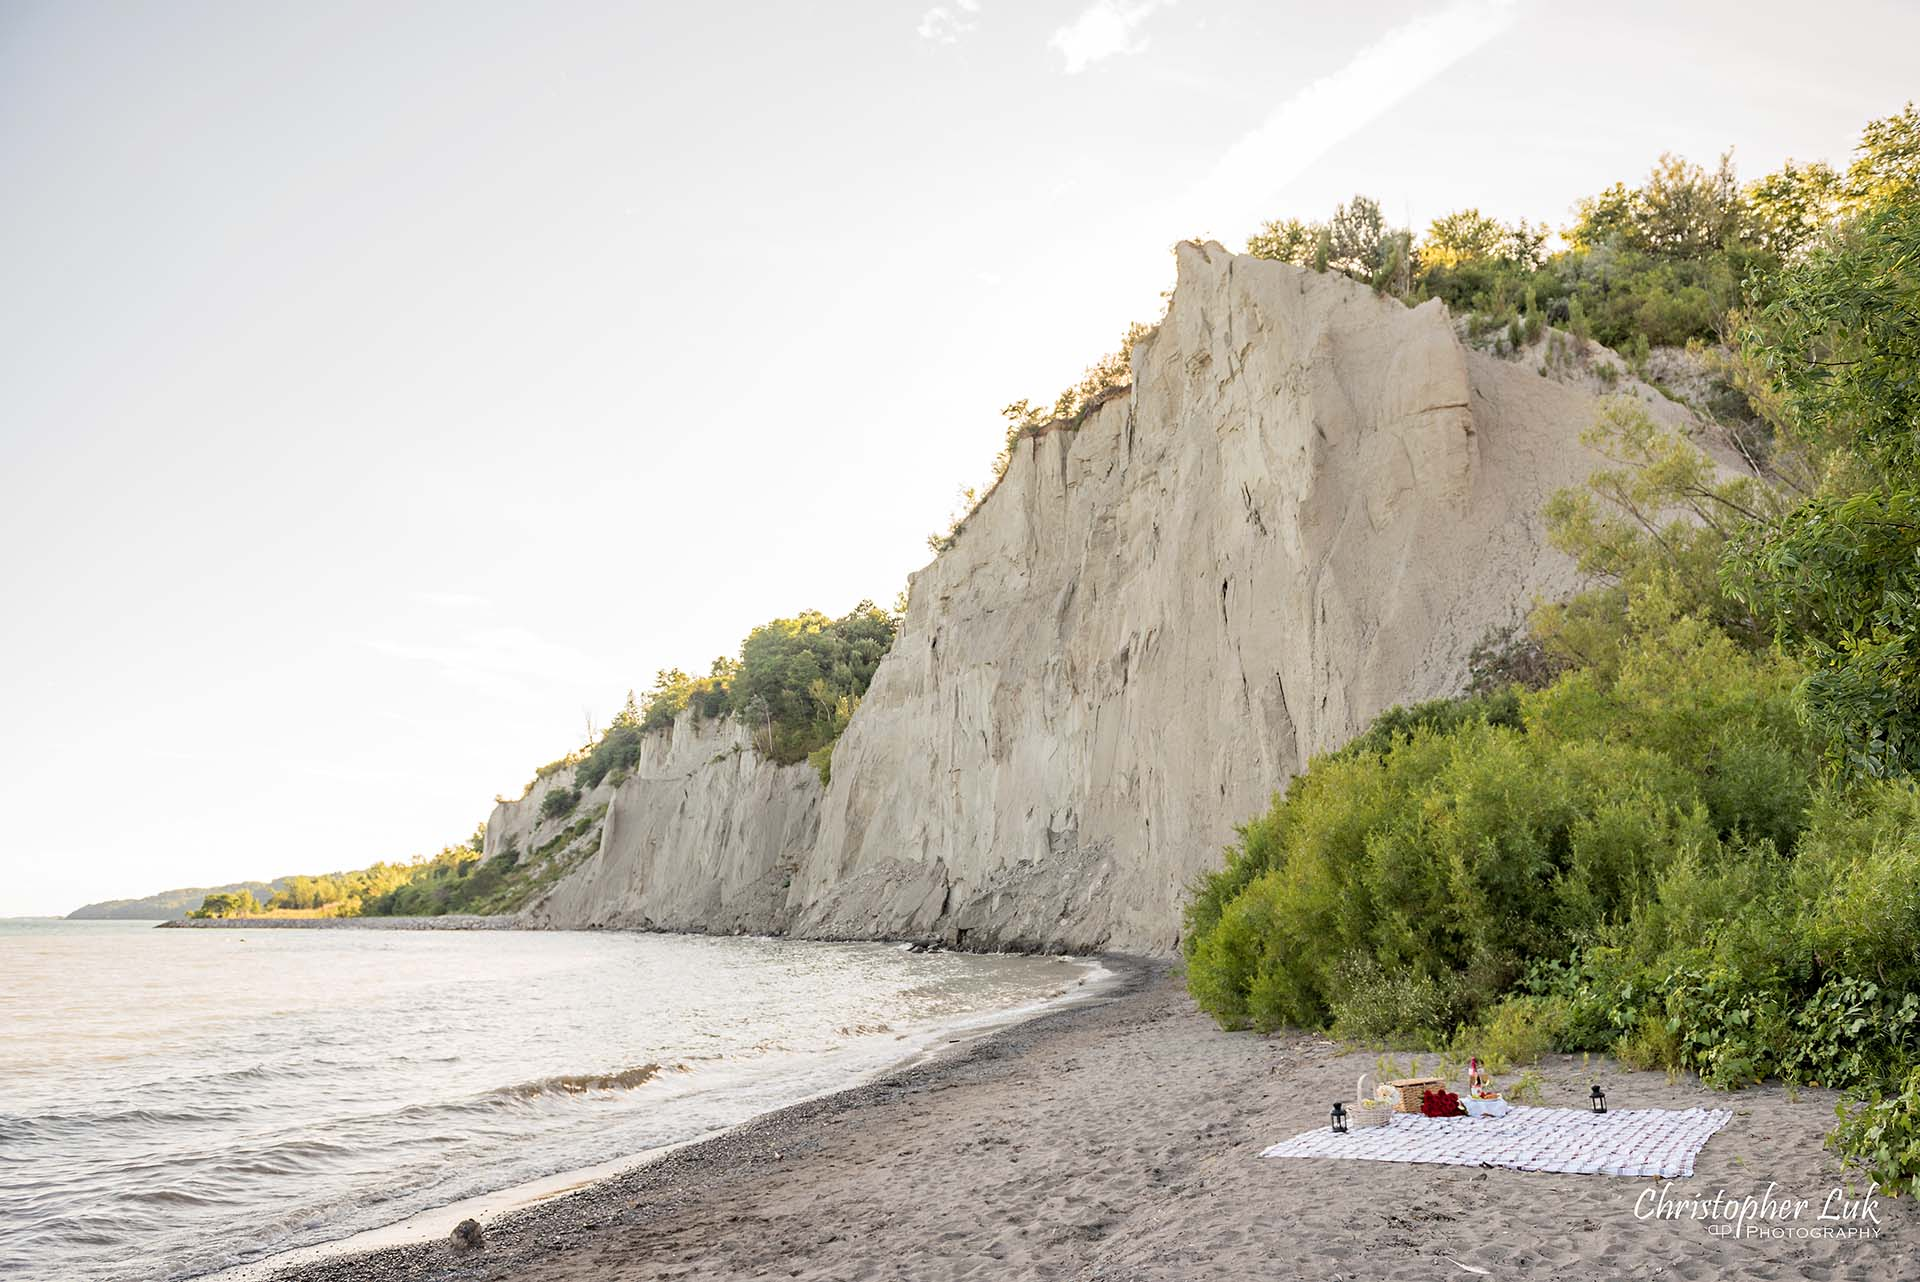 Christopher Luk Toronto Photographer Scarborough Bluffs Beach Park Sunset Surprise Wedding Marriage Engagement Proposal Cliff Stone Rock Face Picnic Blanket Basket Landscape Wide